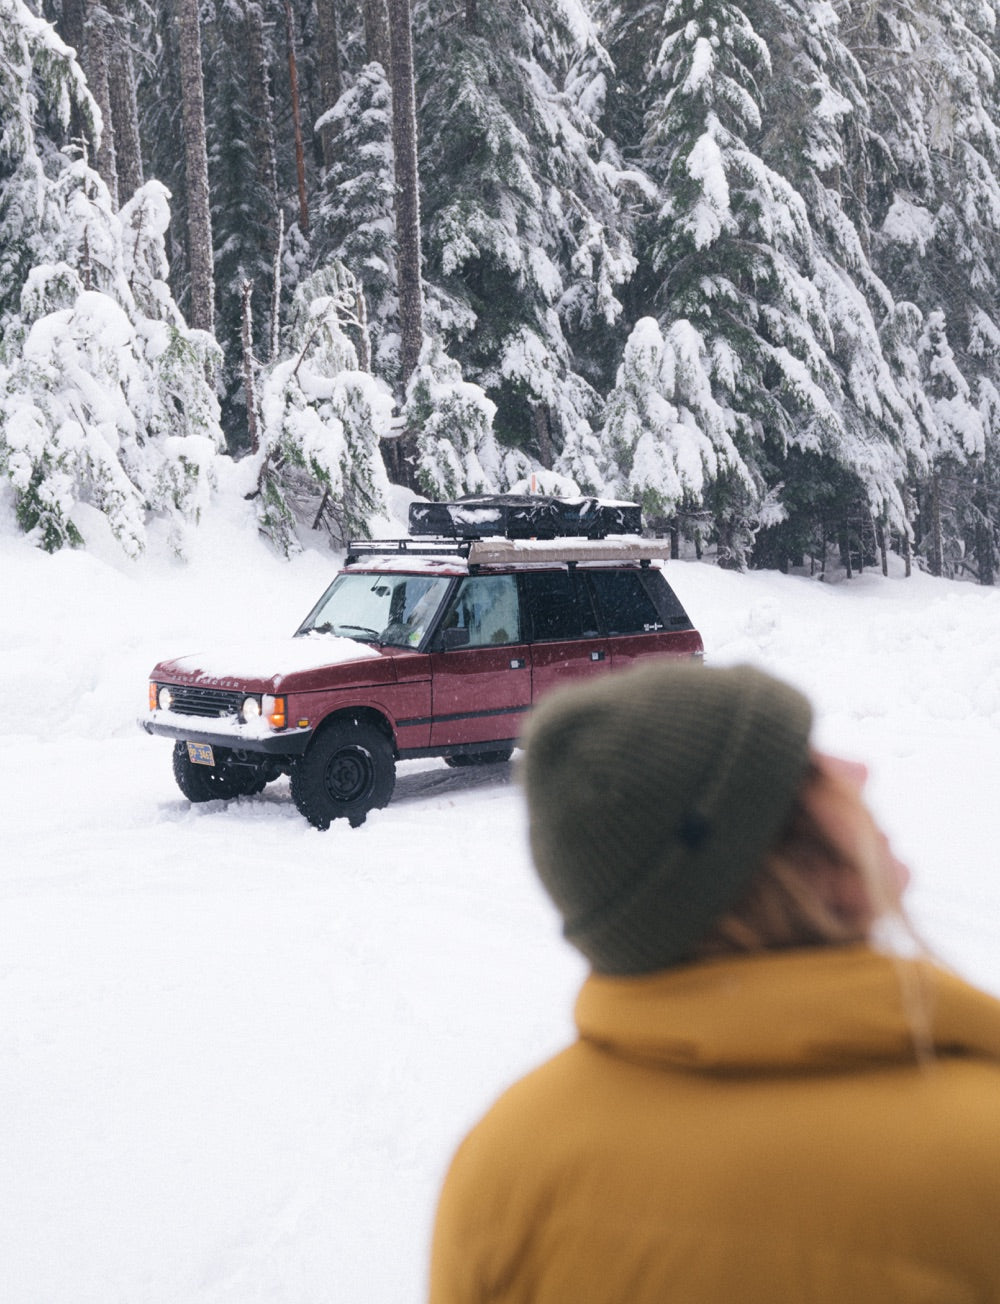 A 4x4 drives through a snow covered road in a forest.